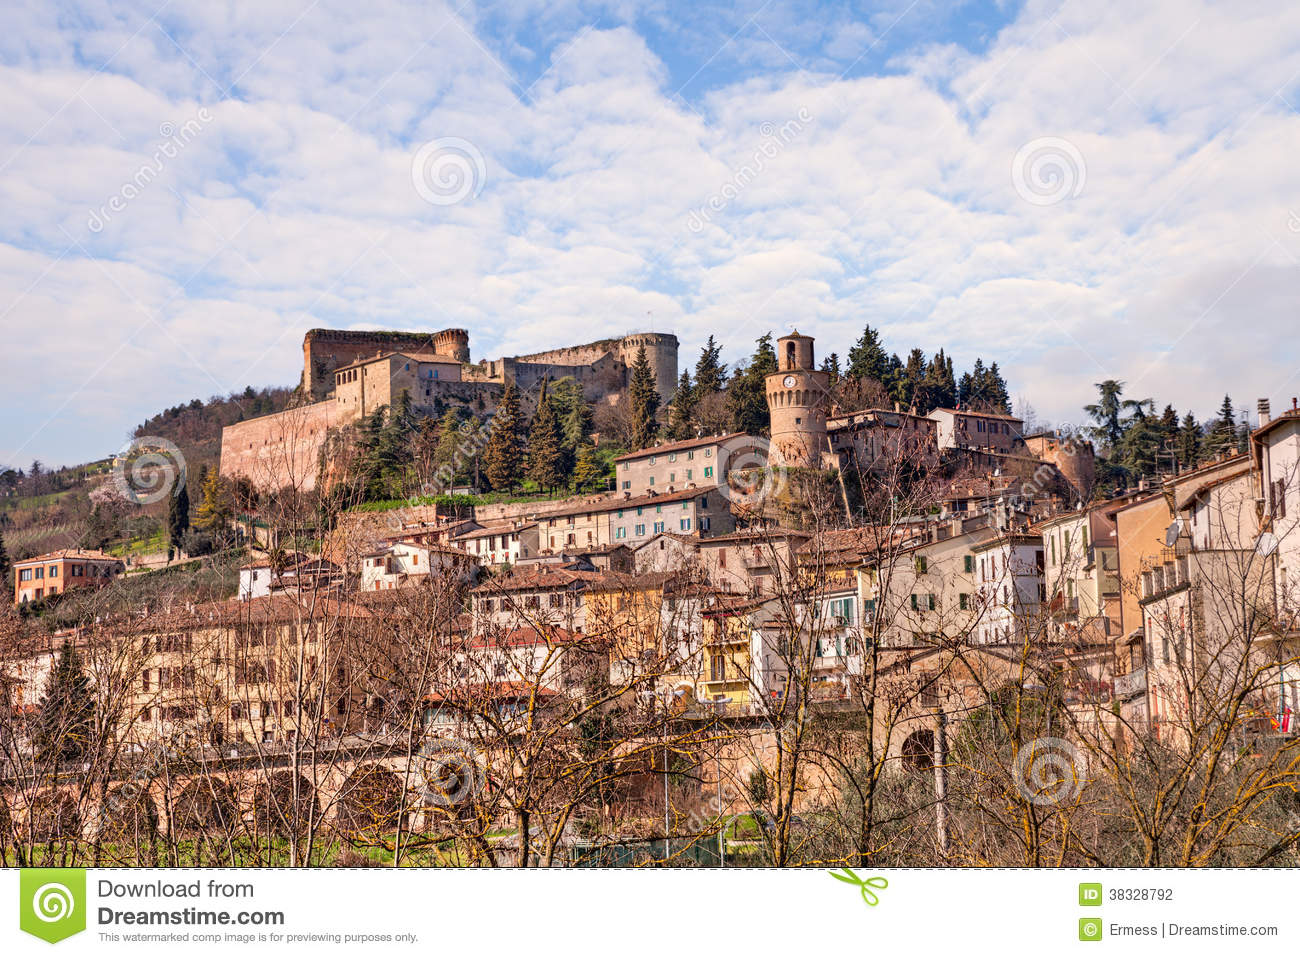 Castrocaro Terme Italy  city pictures gallery : Cityscape Of The Little Town Castrocaro Terme, Italy Stock Photography ...